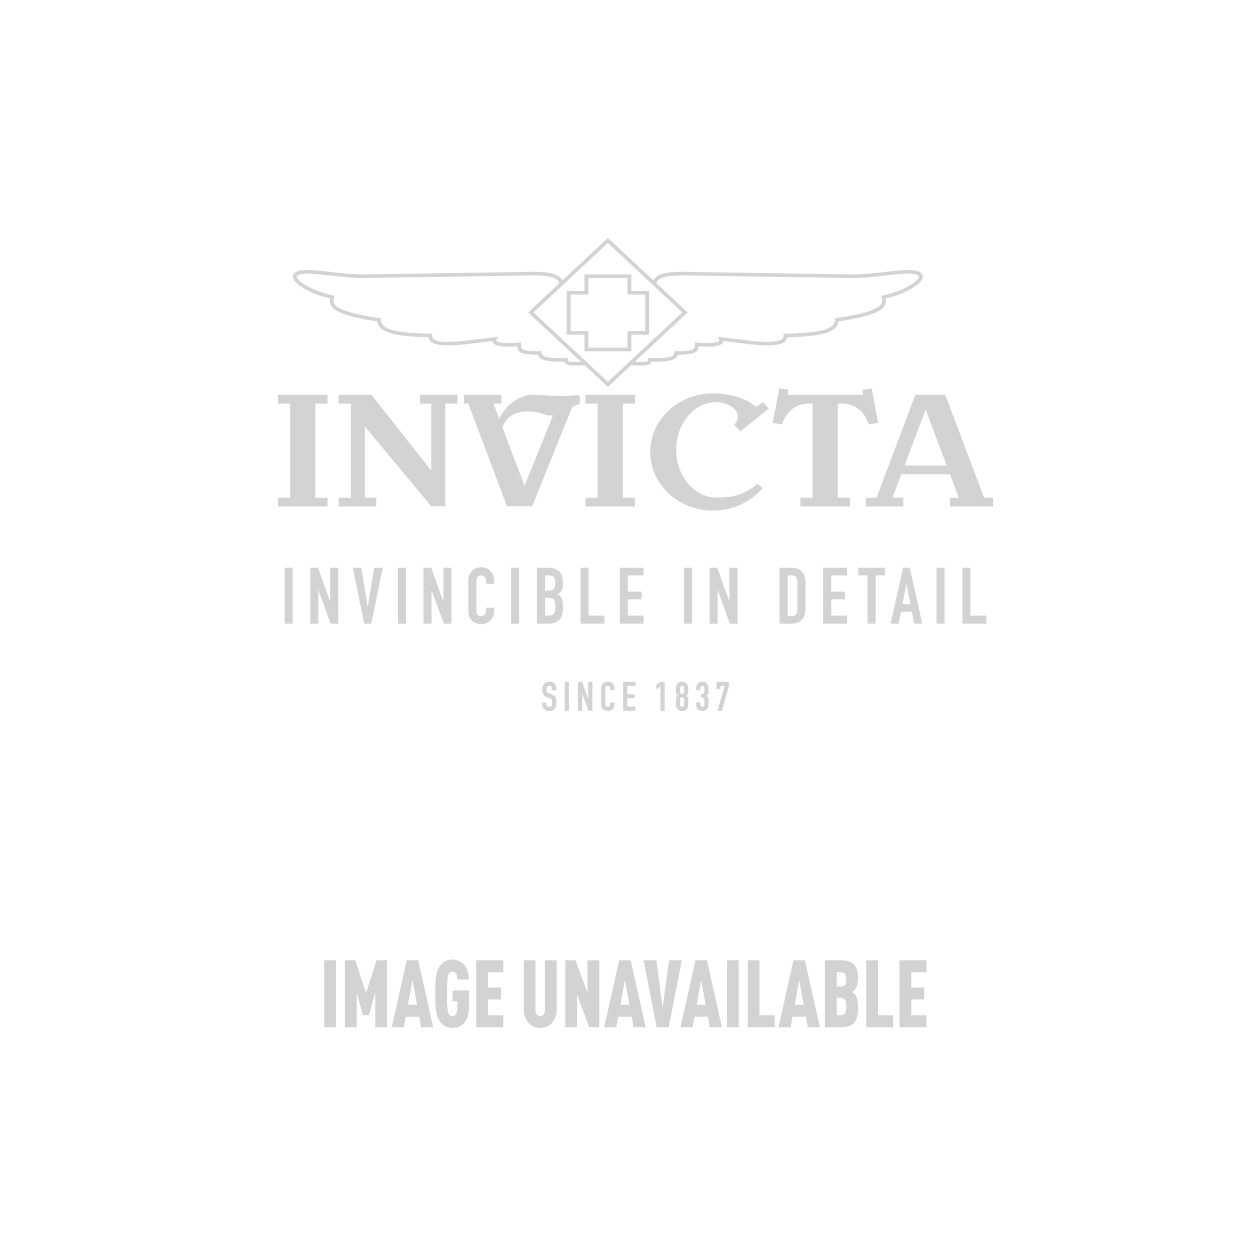 Invicta Pro Diver watch in Stainless Steel at InvictaStores.com 6ca184e7c